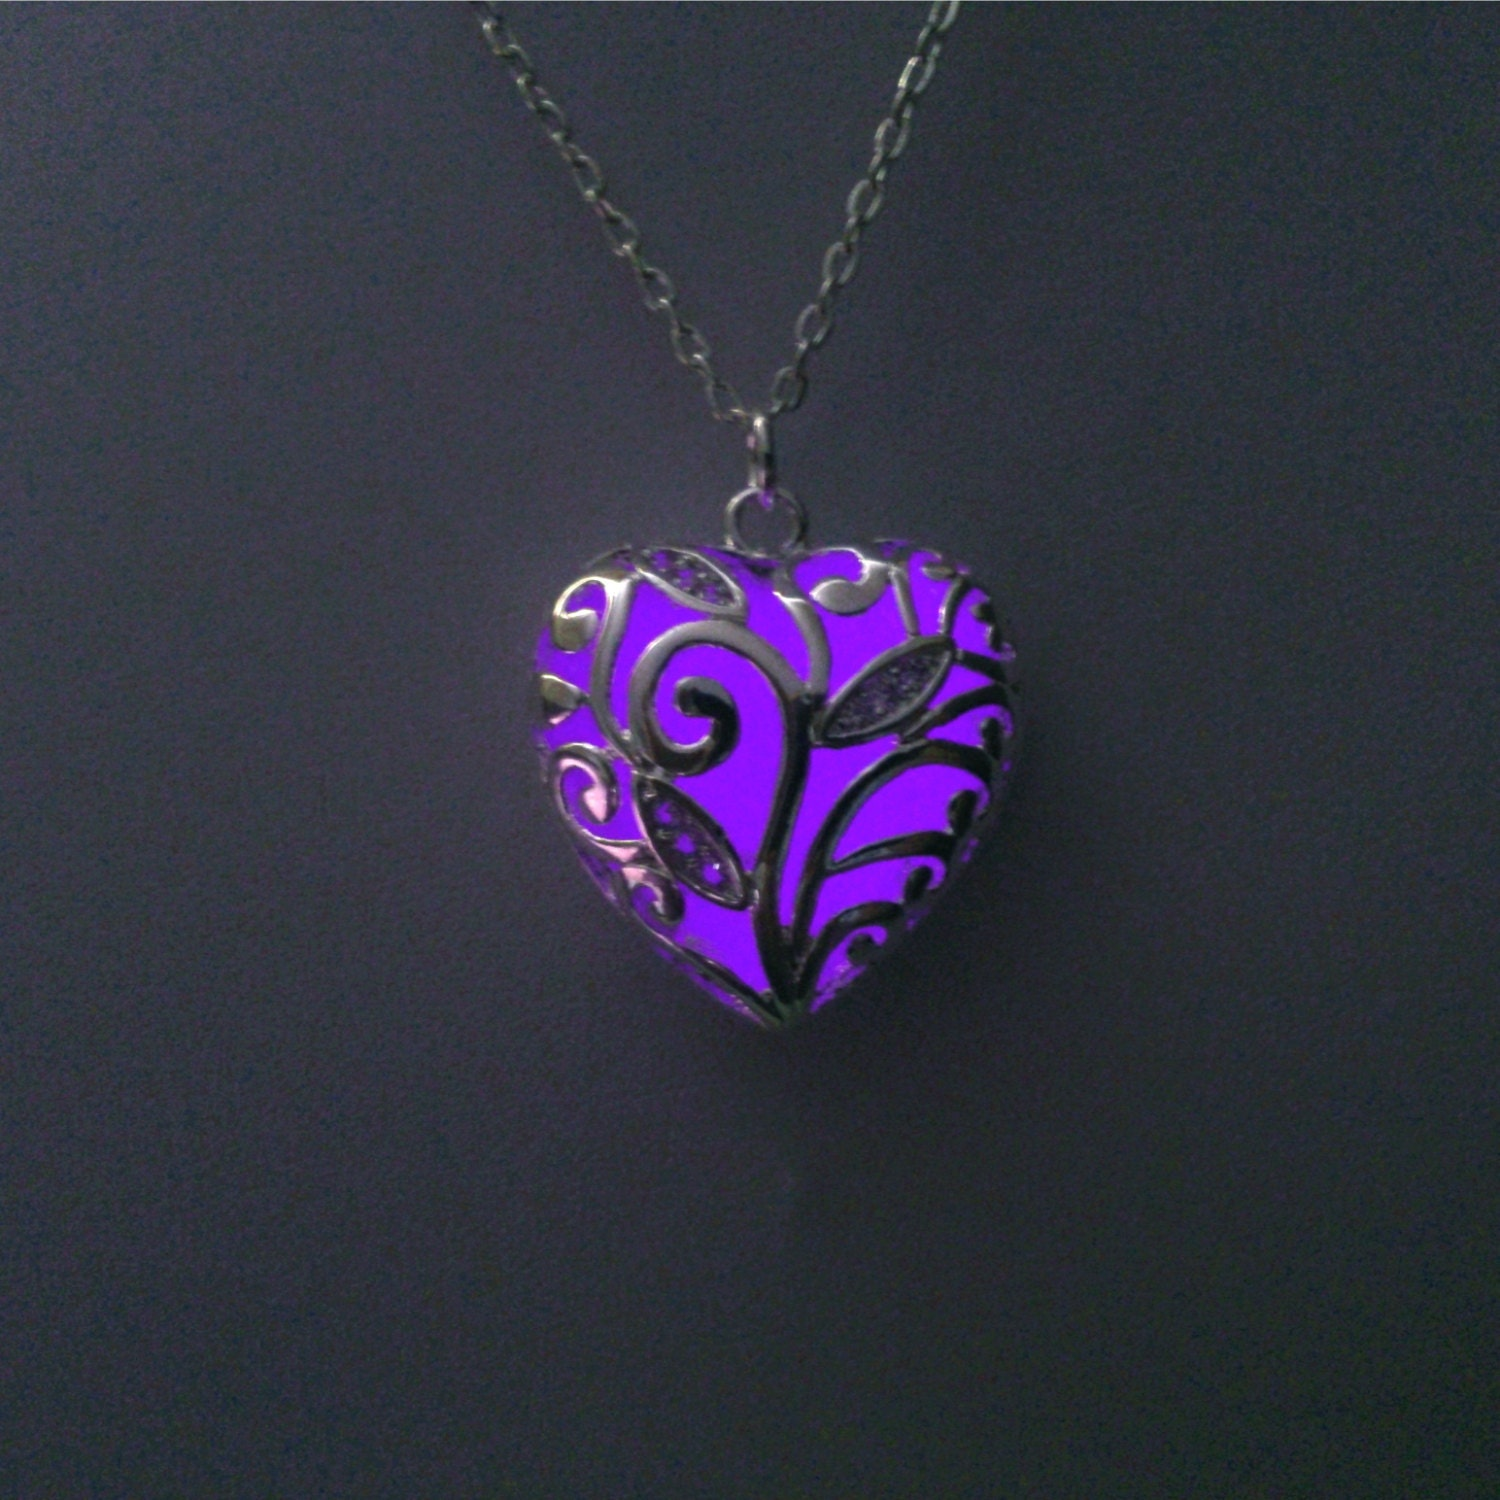 accent pendant uk necklace heart amethyst amazon diamond co purple plated rhodium shape dp jewellery